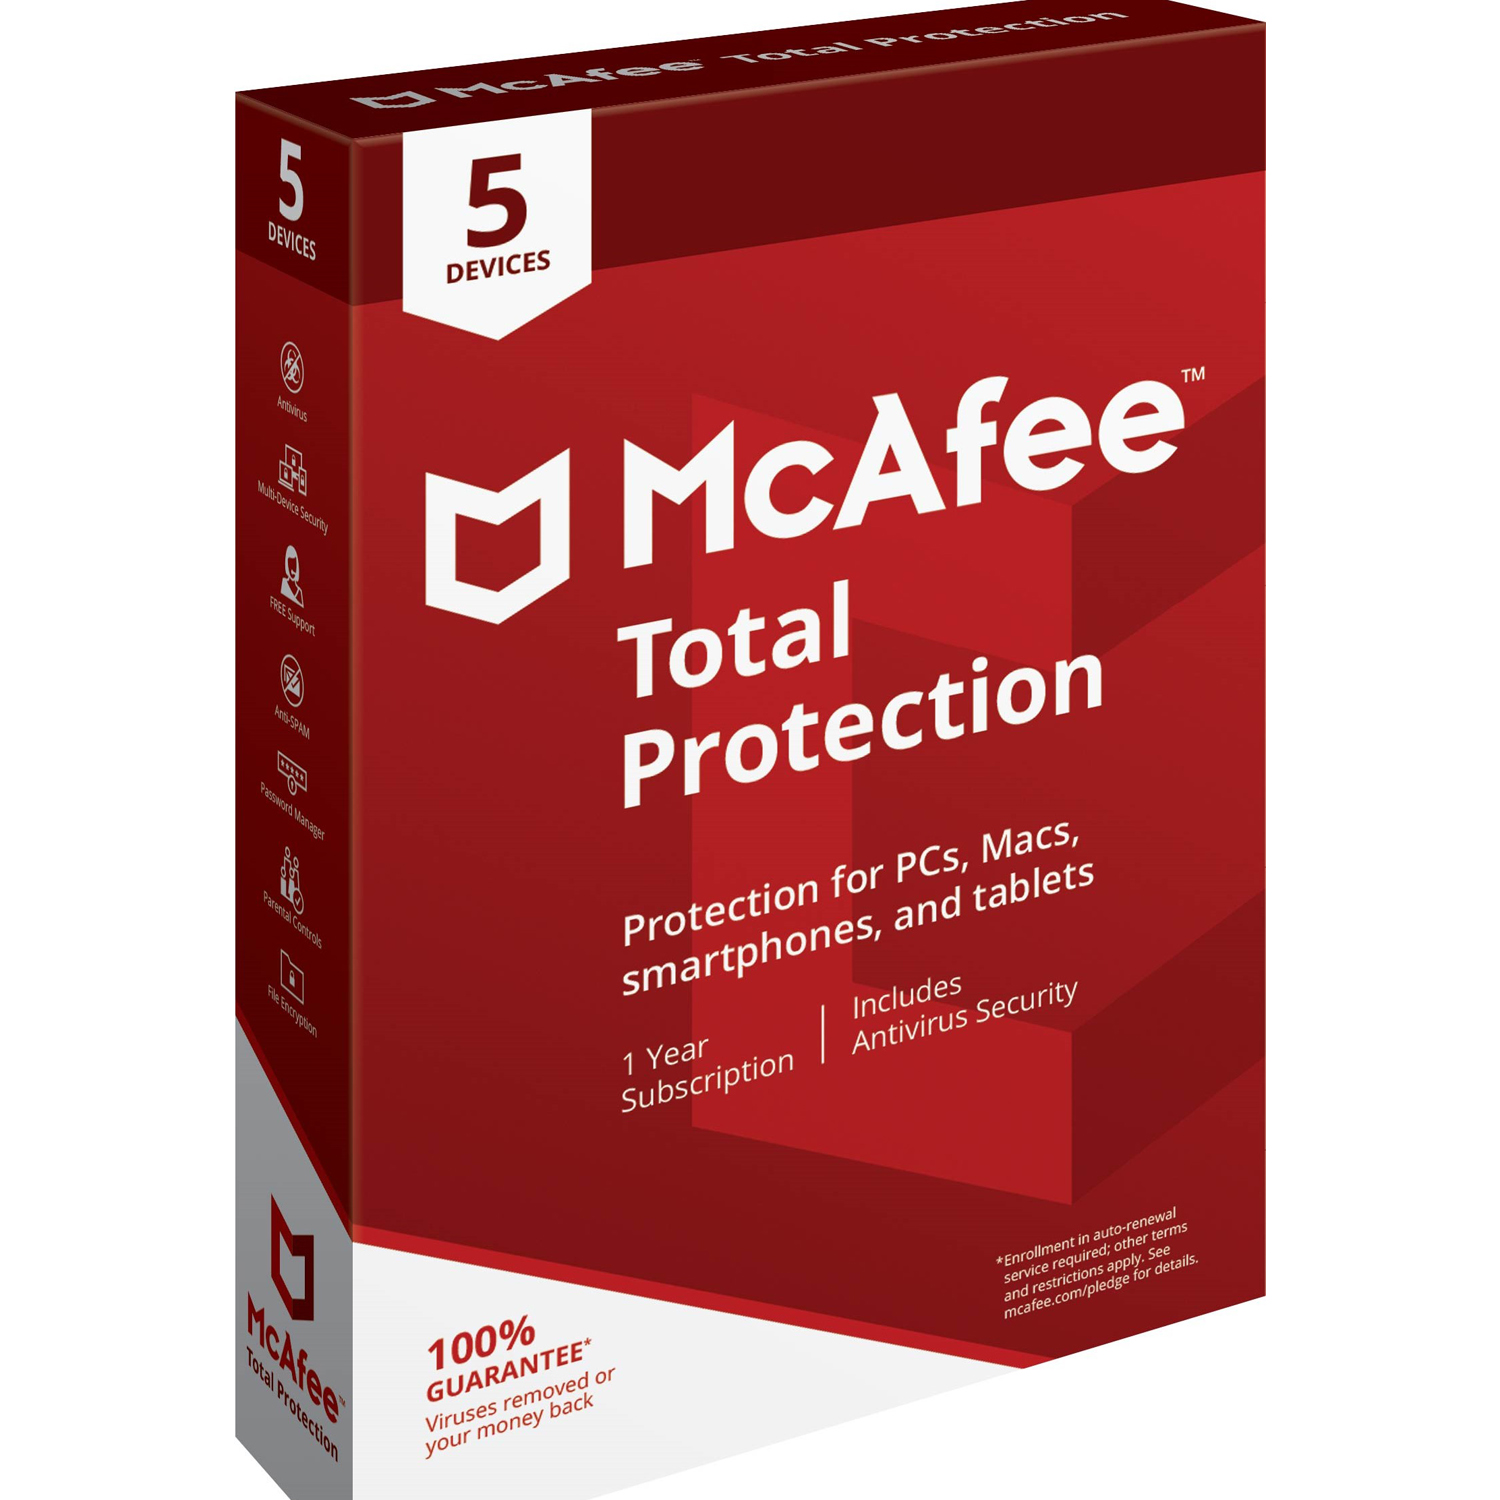 McAfee Total Protection 5 Device